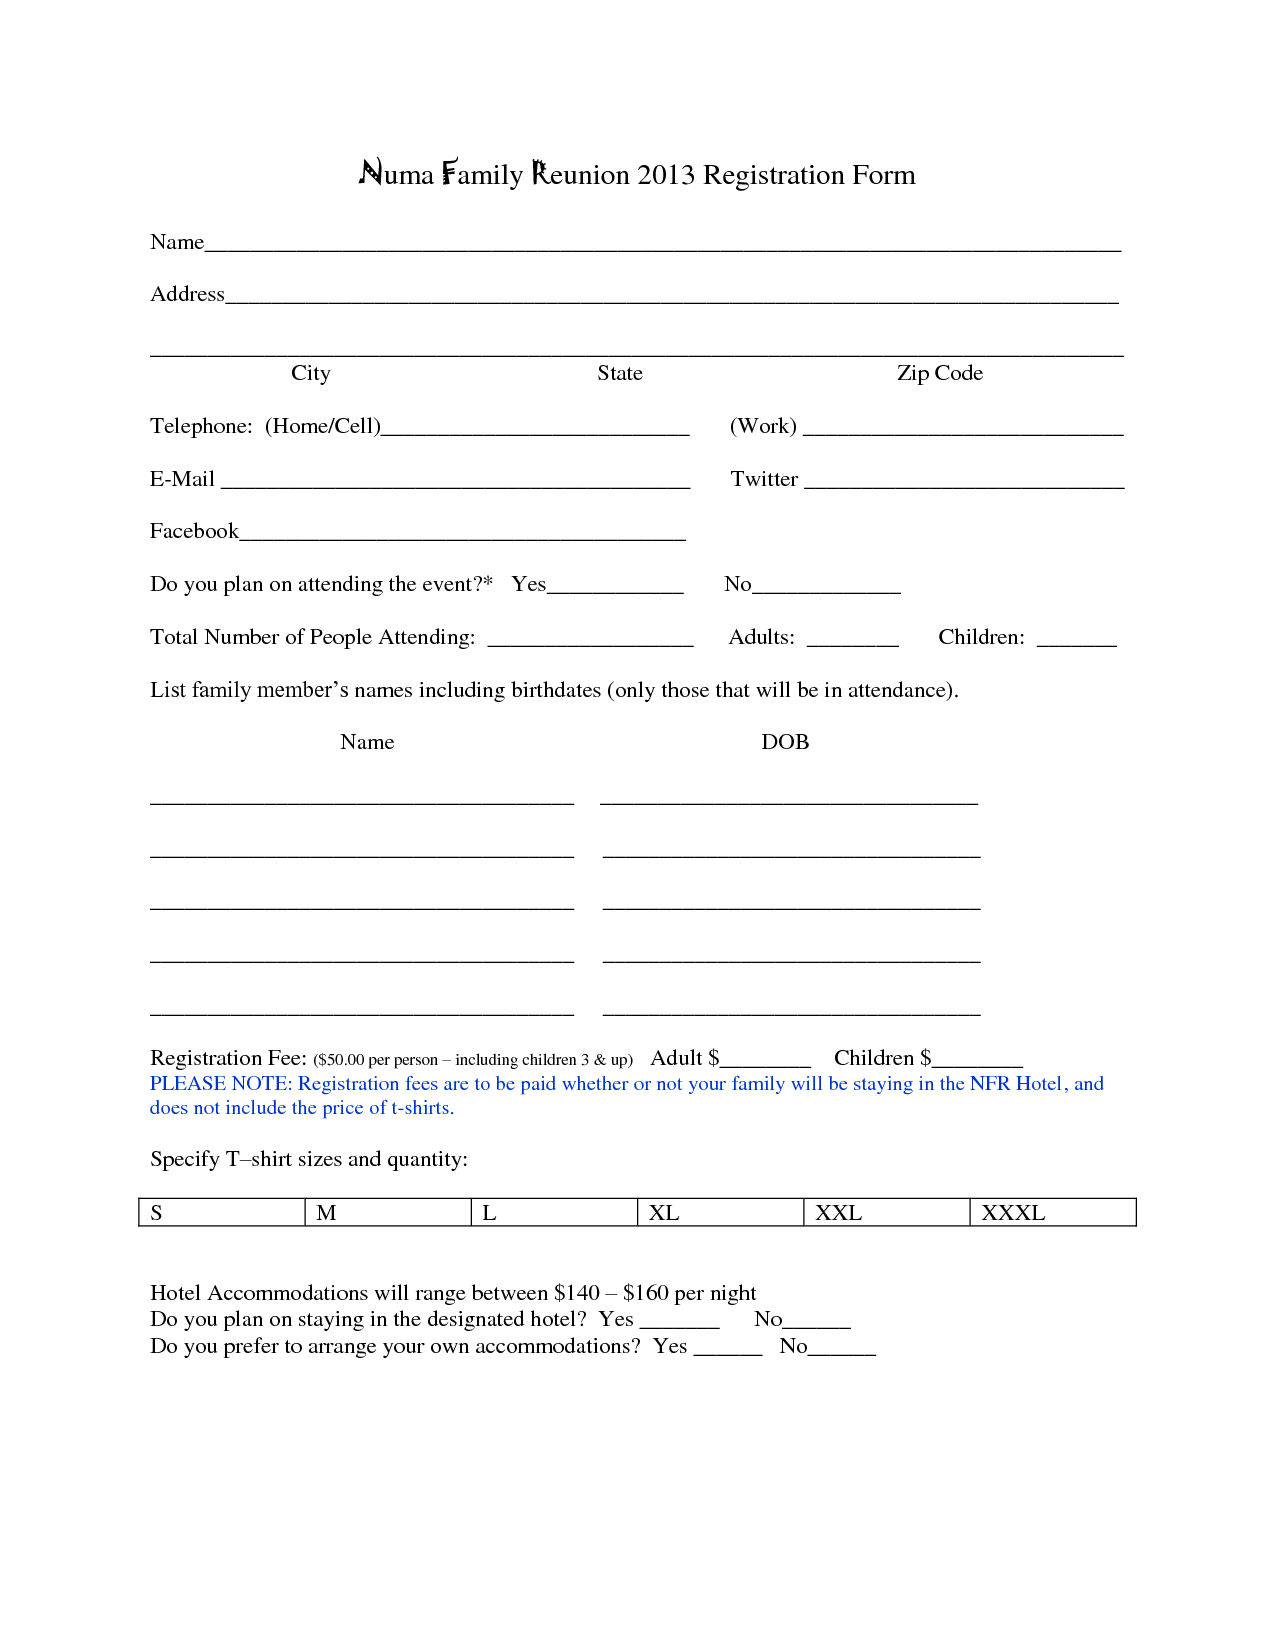 dance school registration form template free - family reunion registration form template family